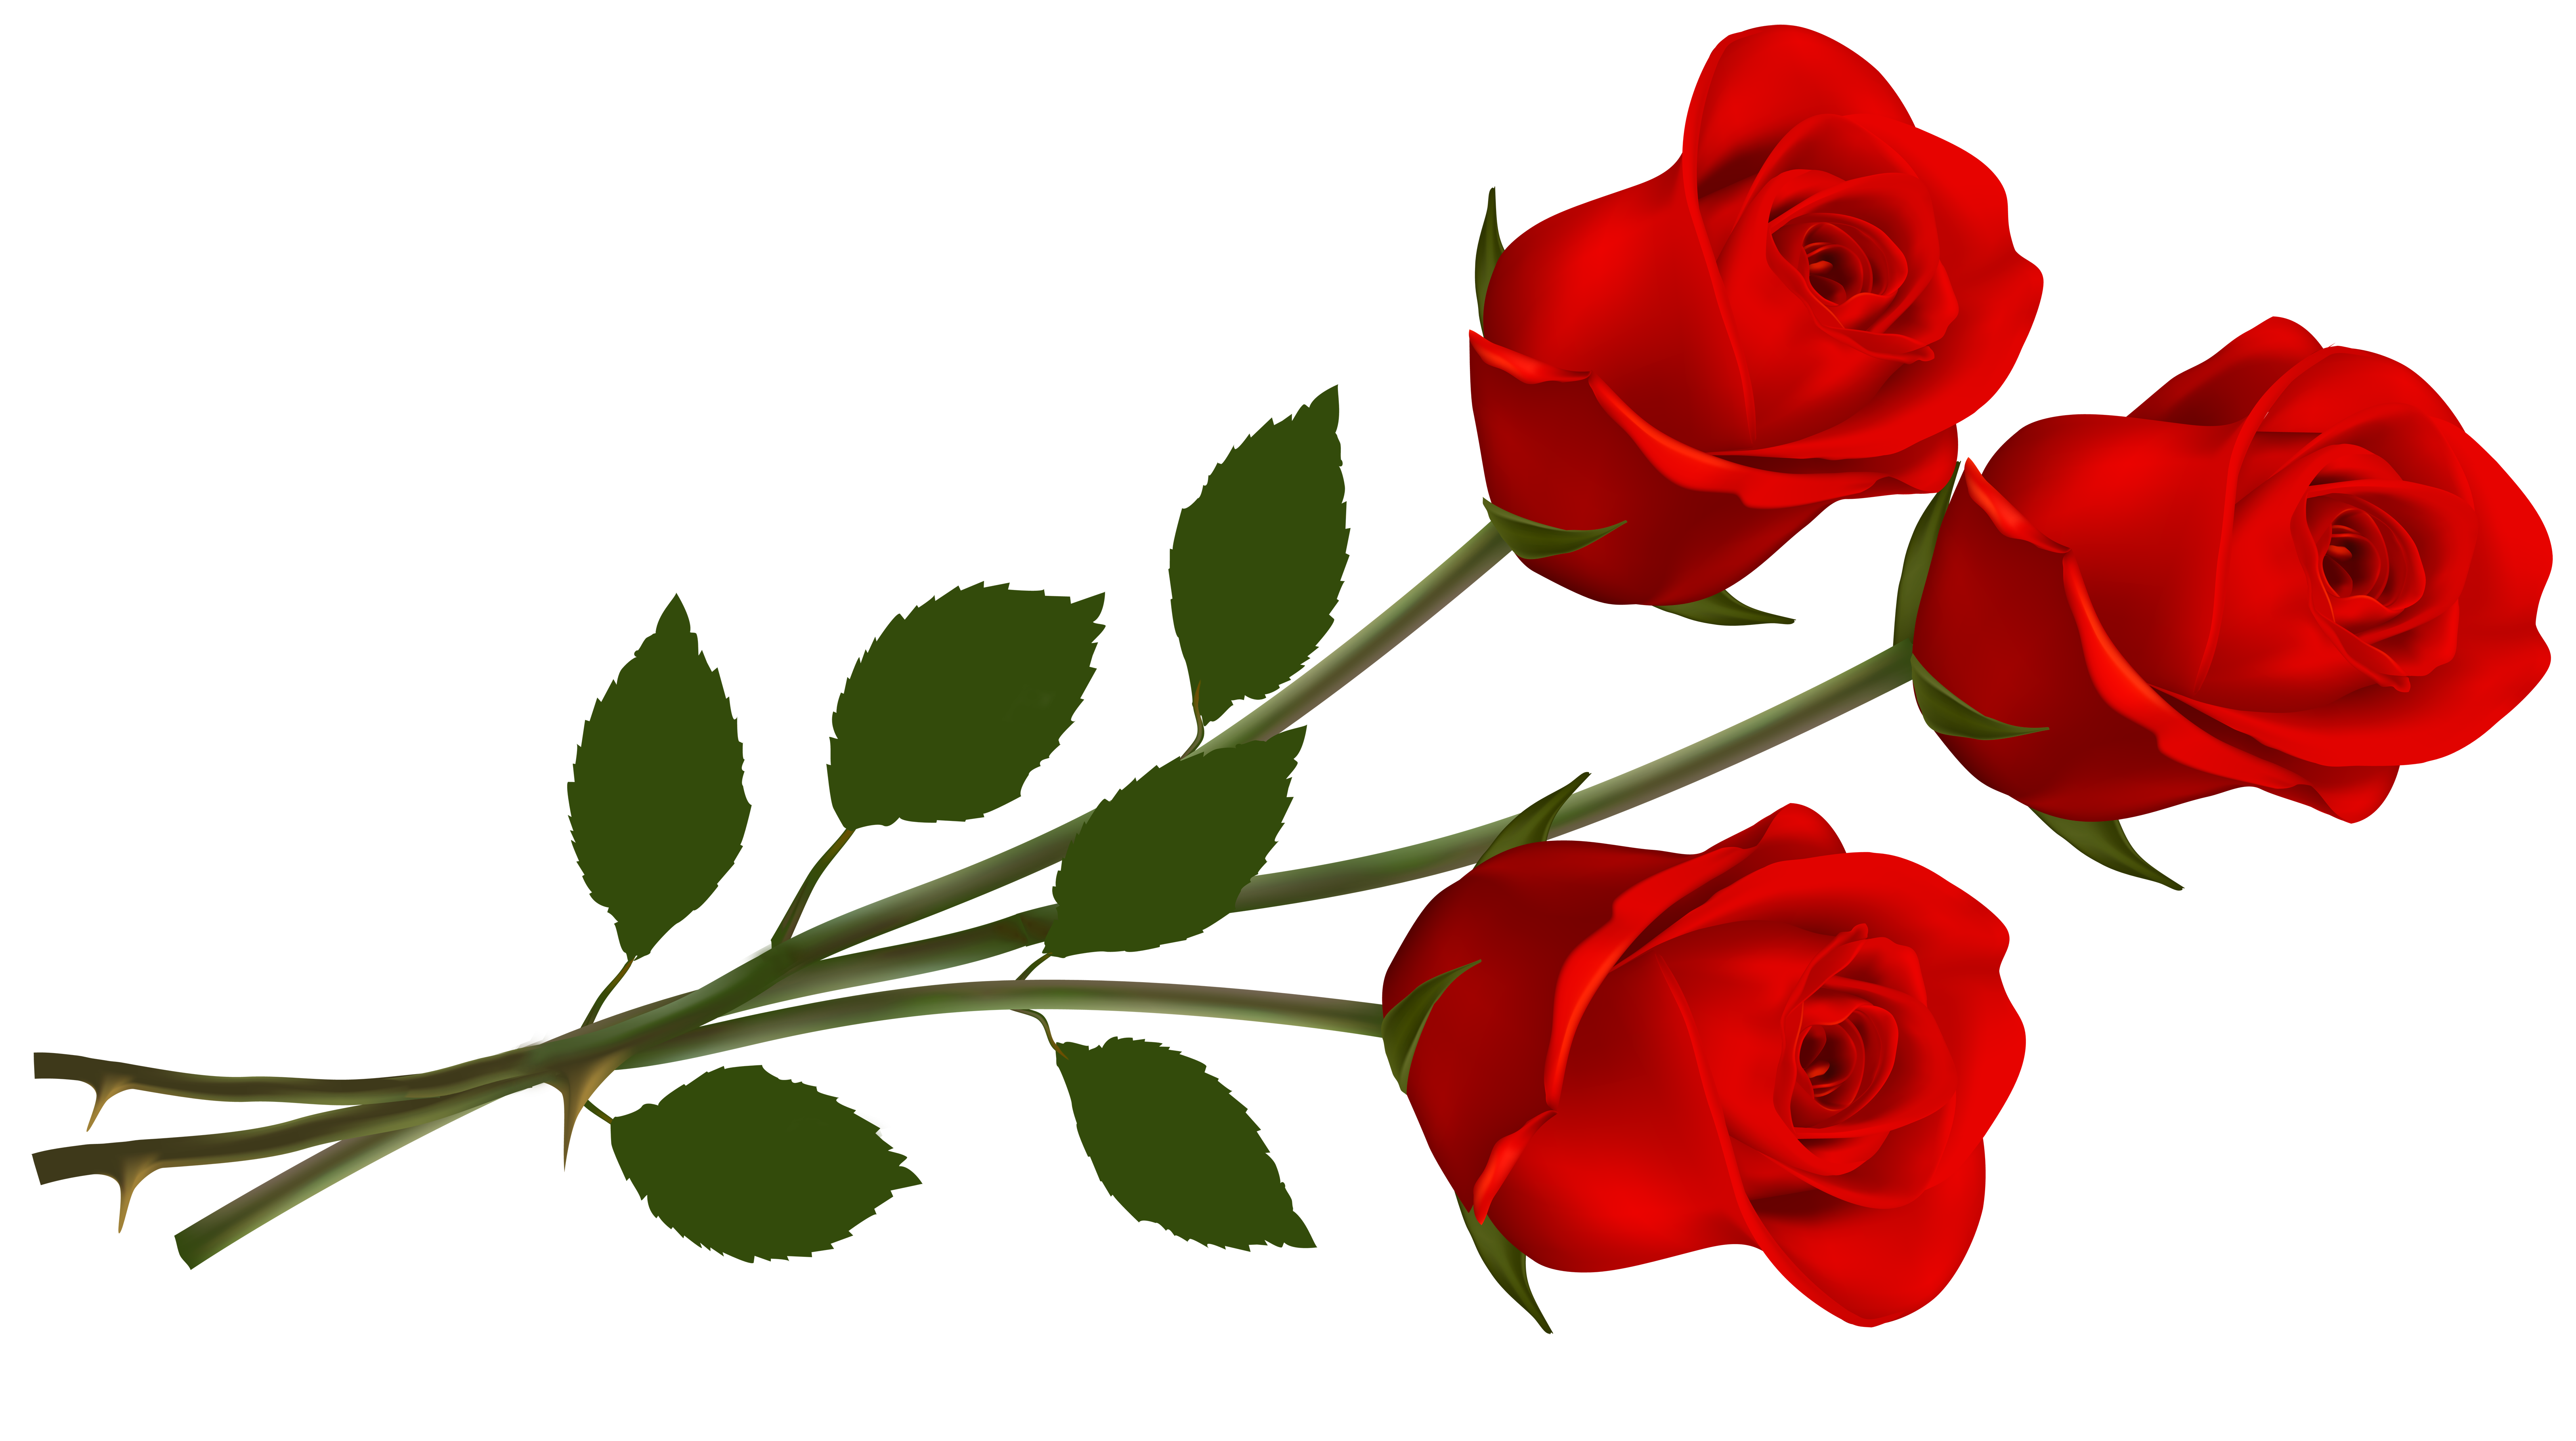 Piq8qkg5t Png 6500 3637 Single Red Rose Rose Clipart Red Roses